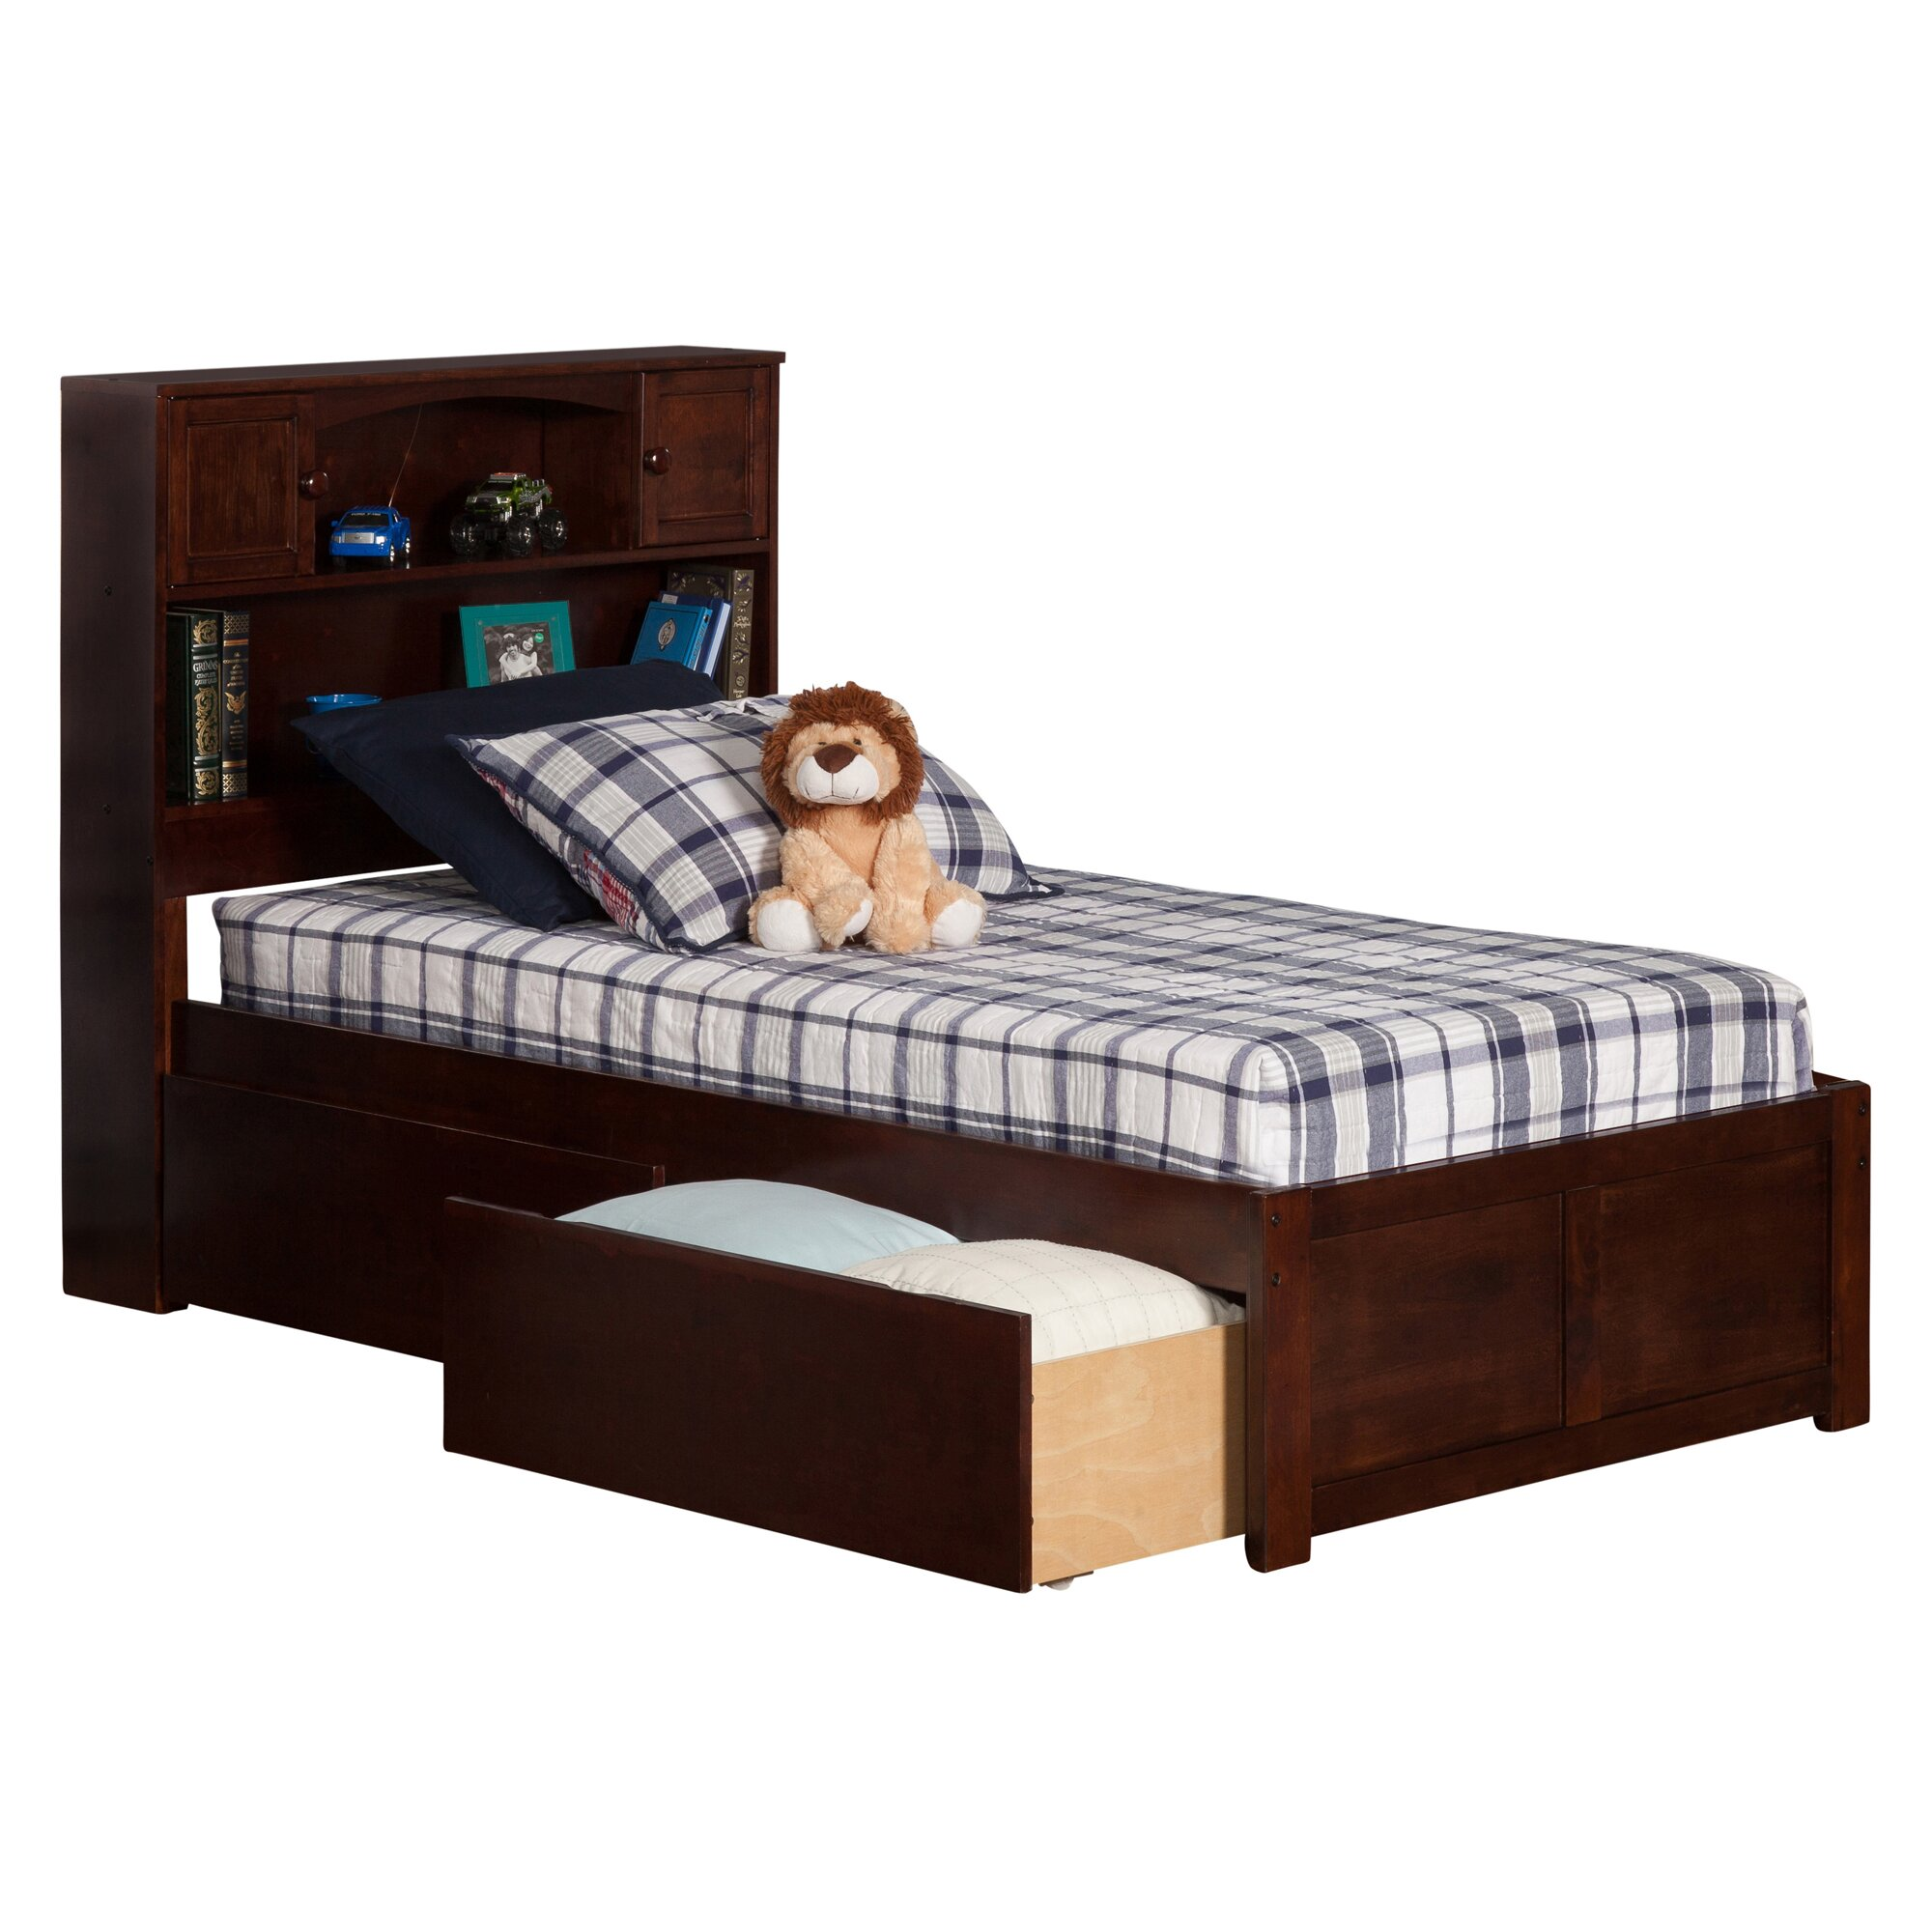 Atlantic Furniture Twin Bed